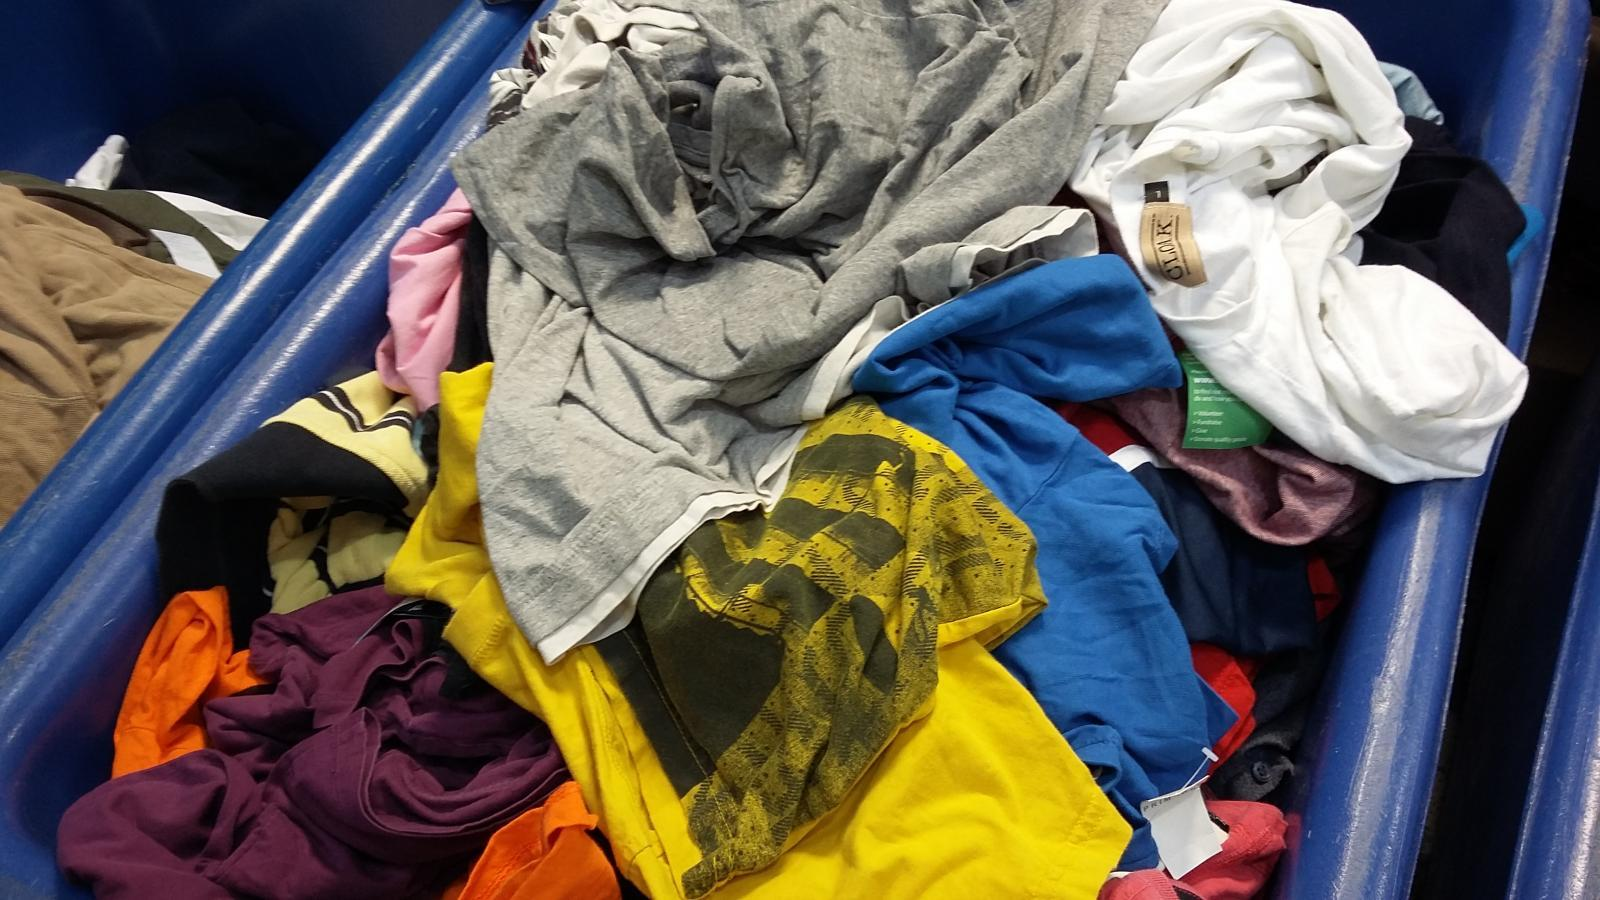 A pile of folded t-shirts.